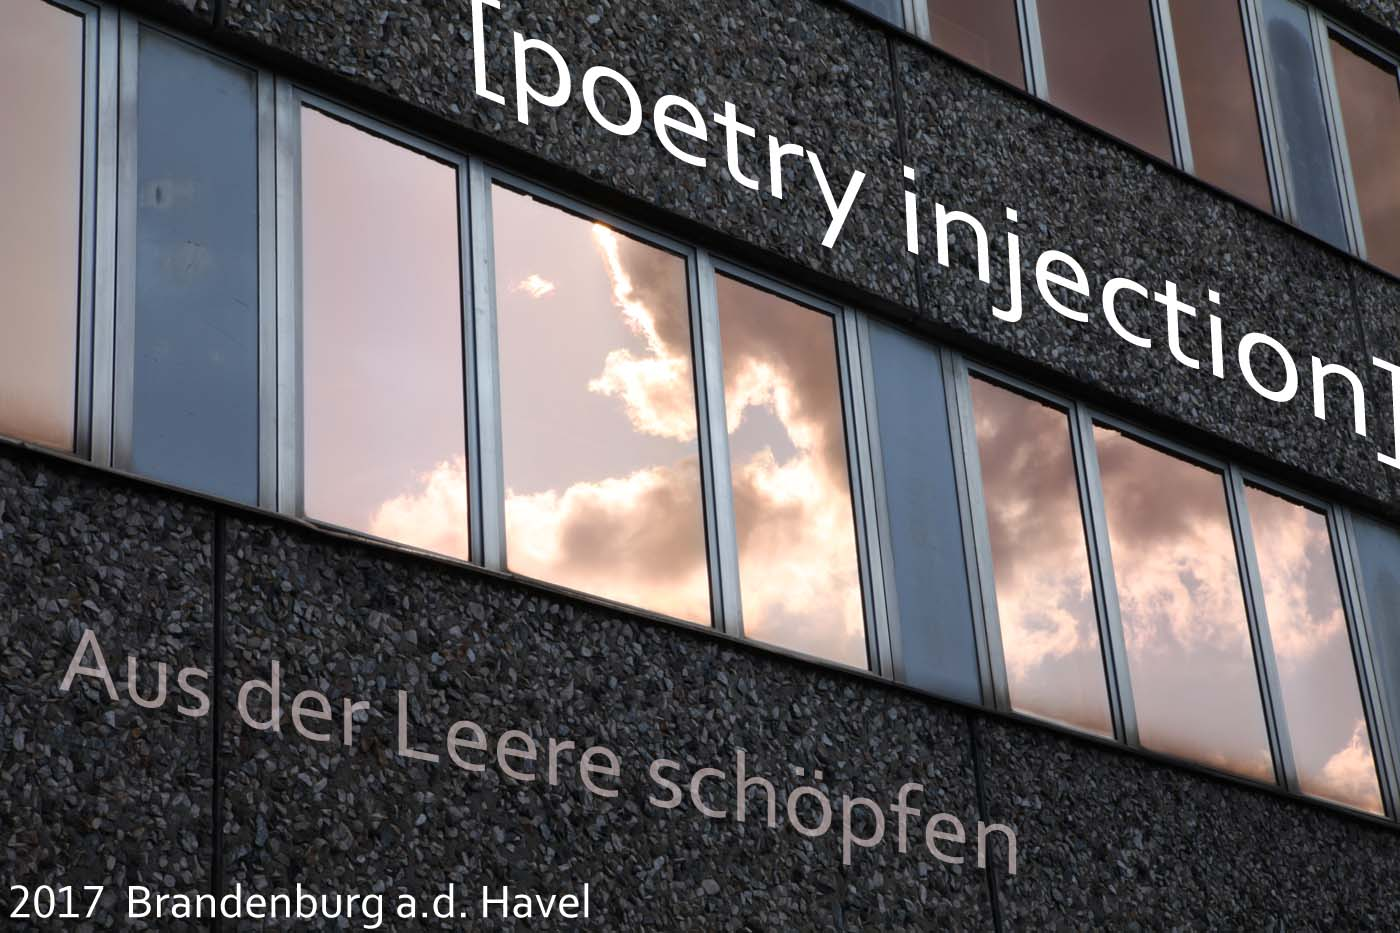 poetry injection